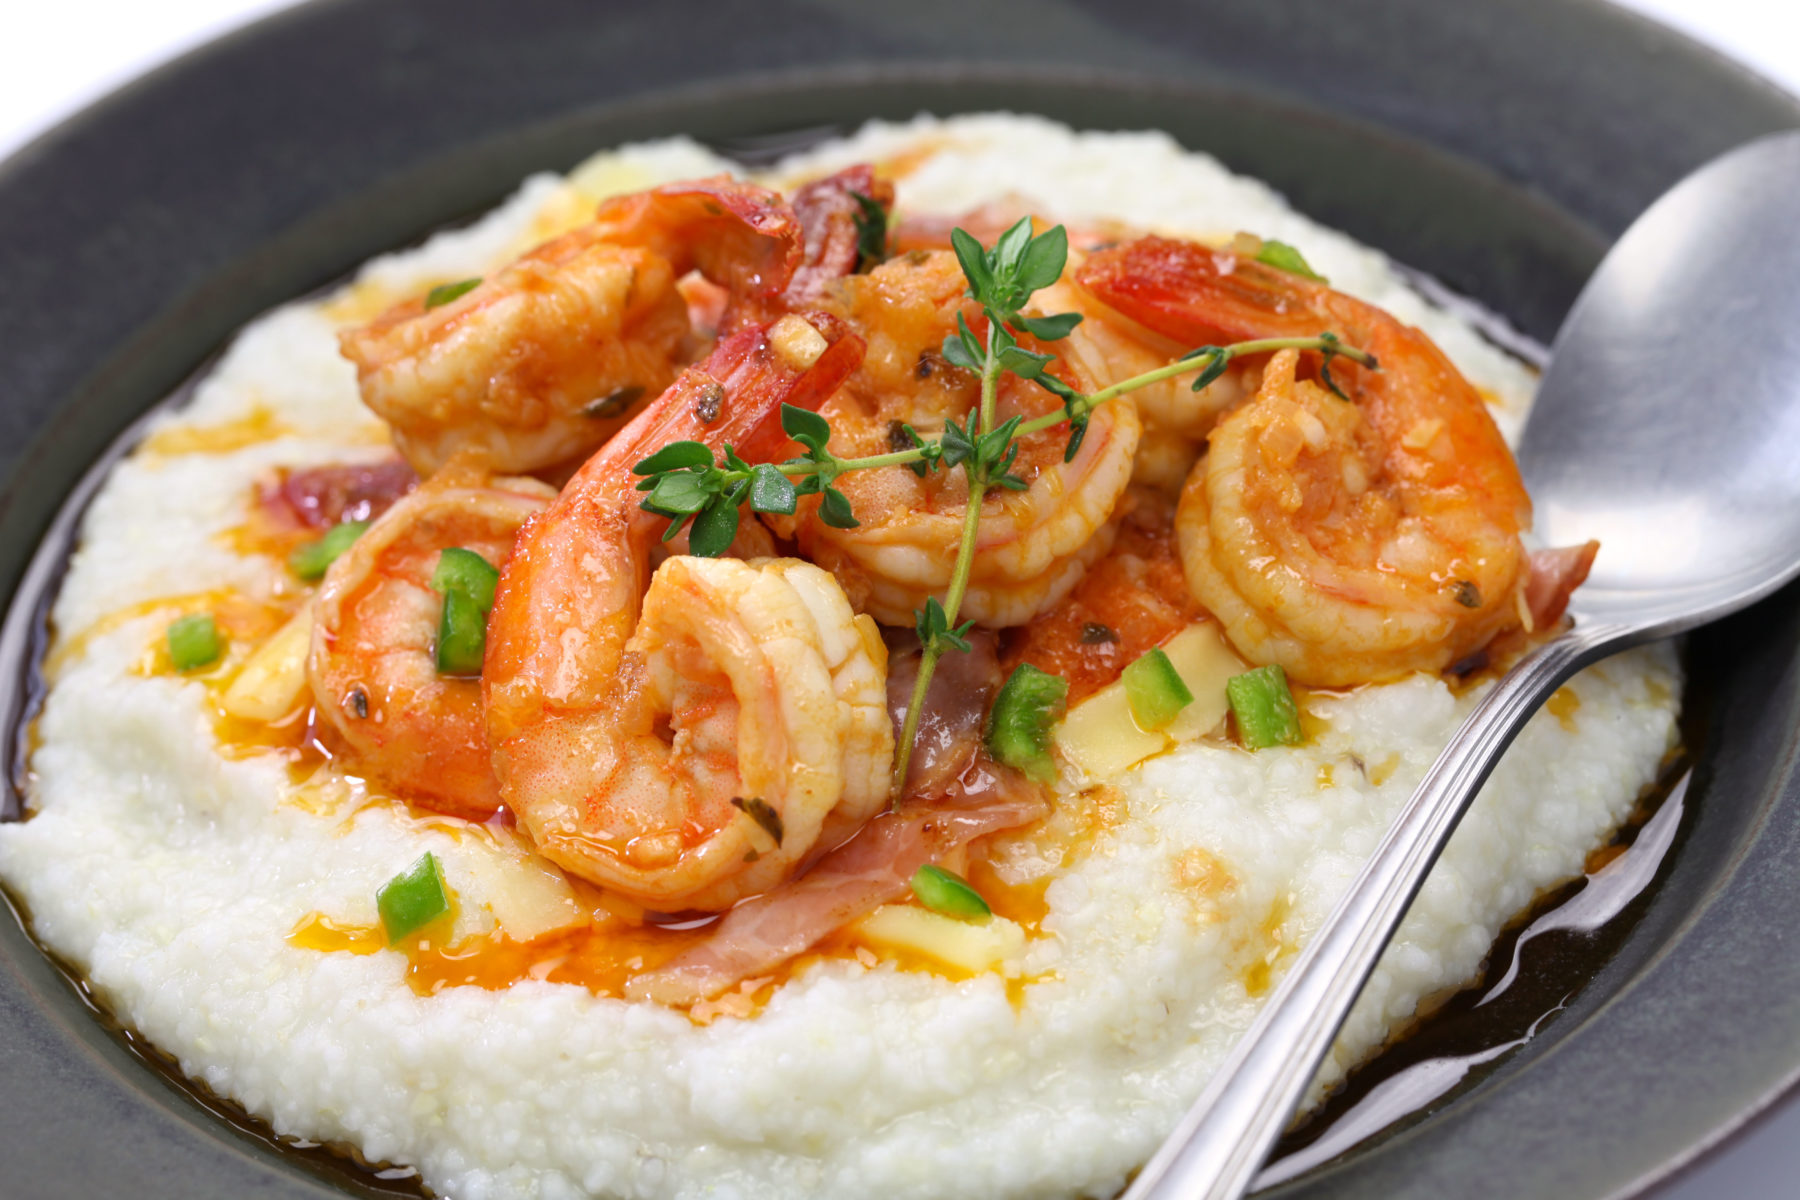 Hilton Head seafood - shrimp and grits